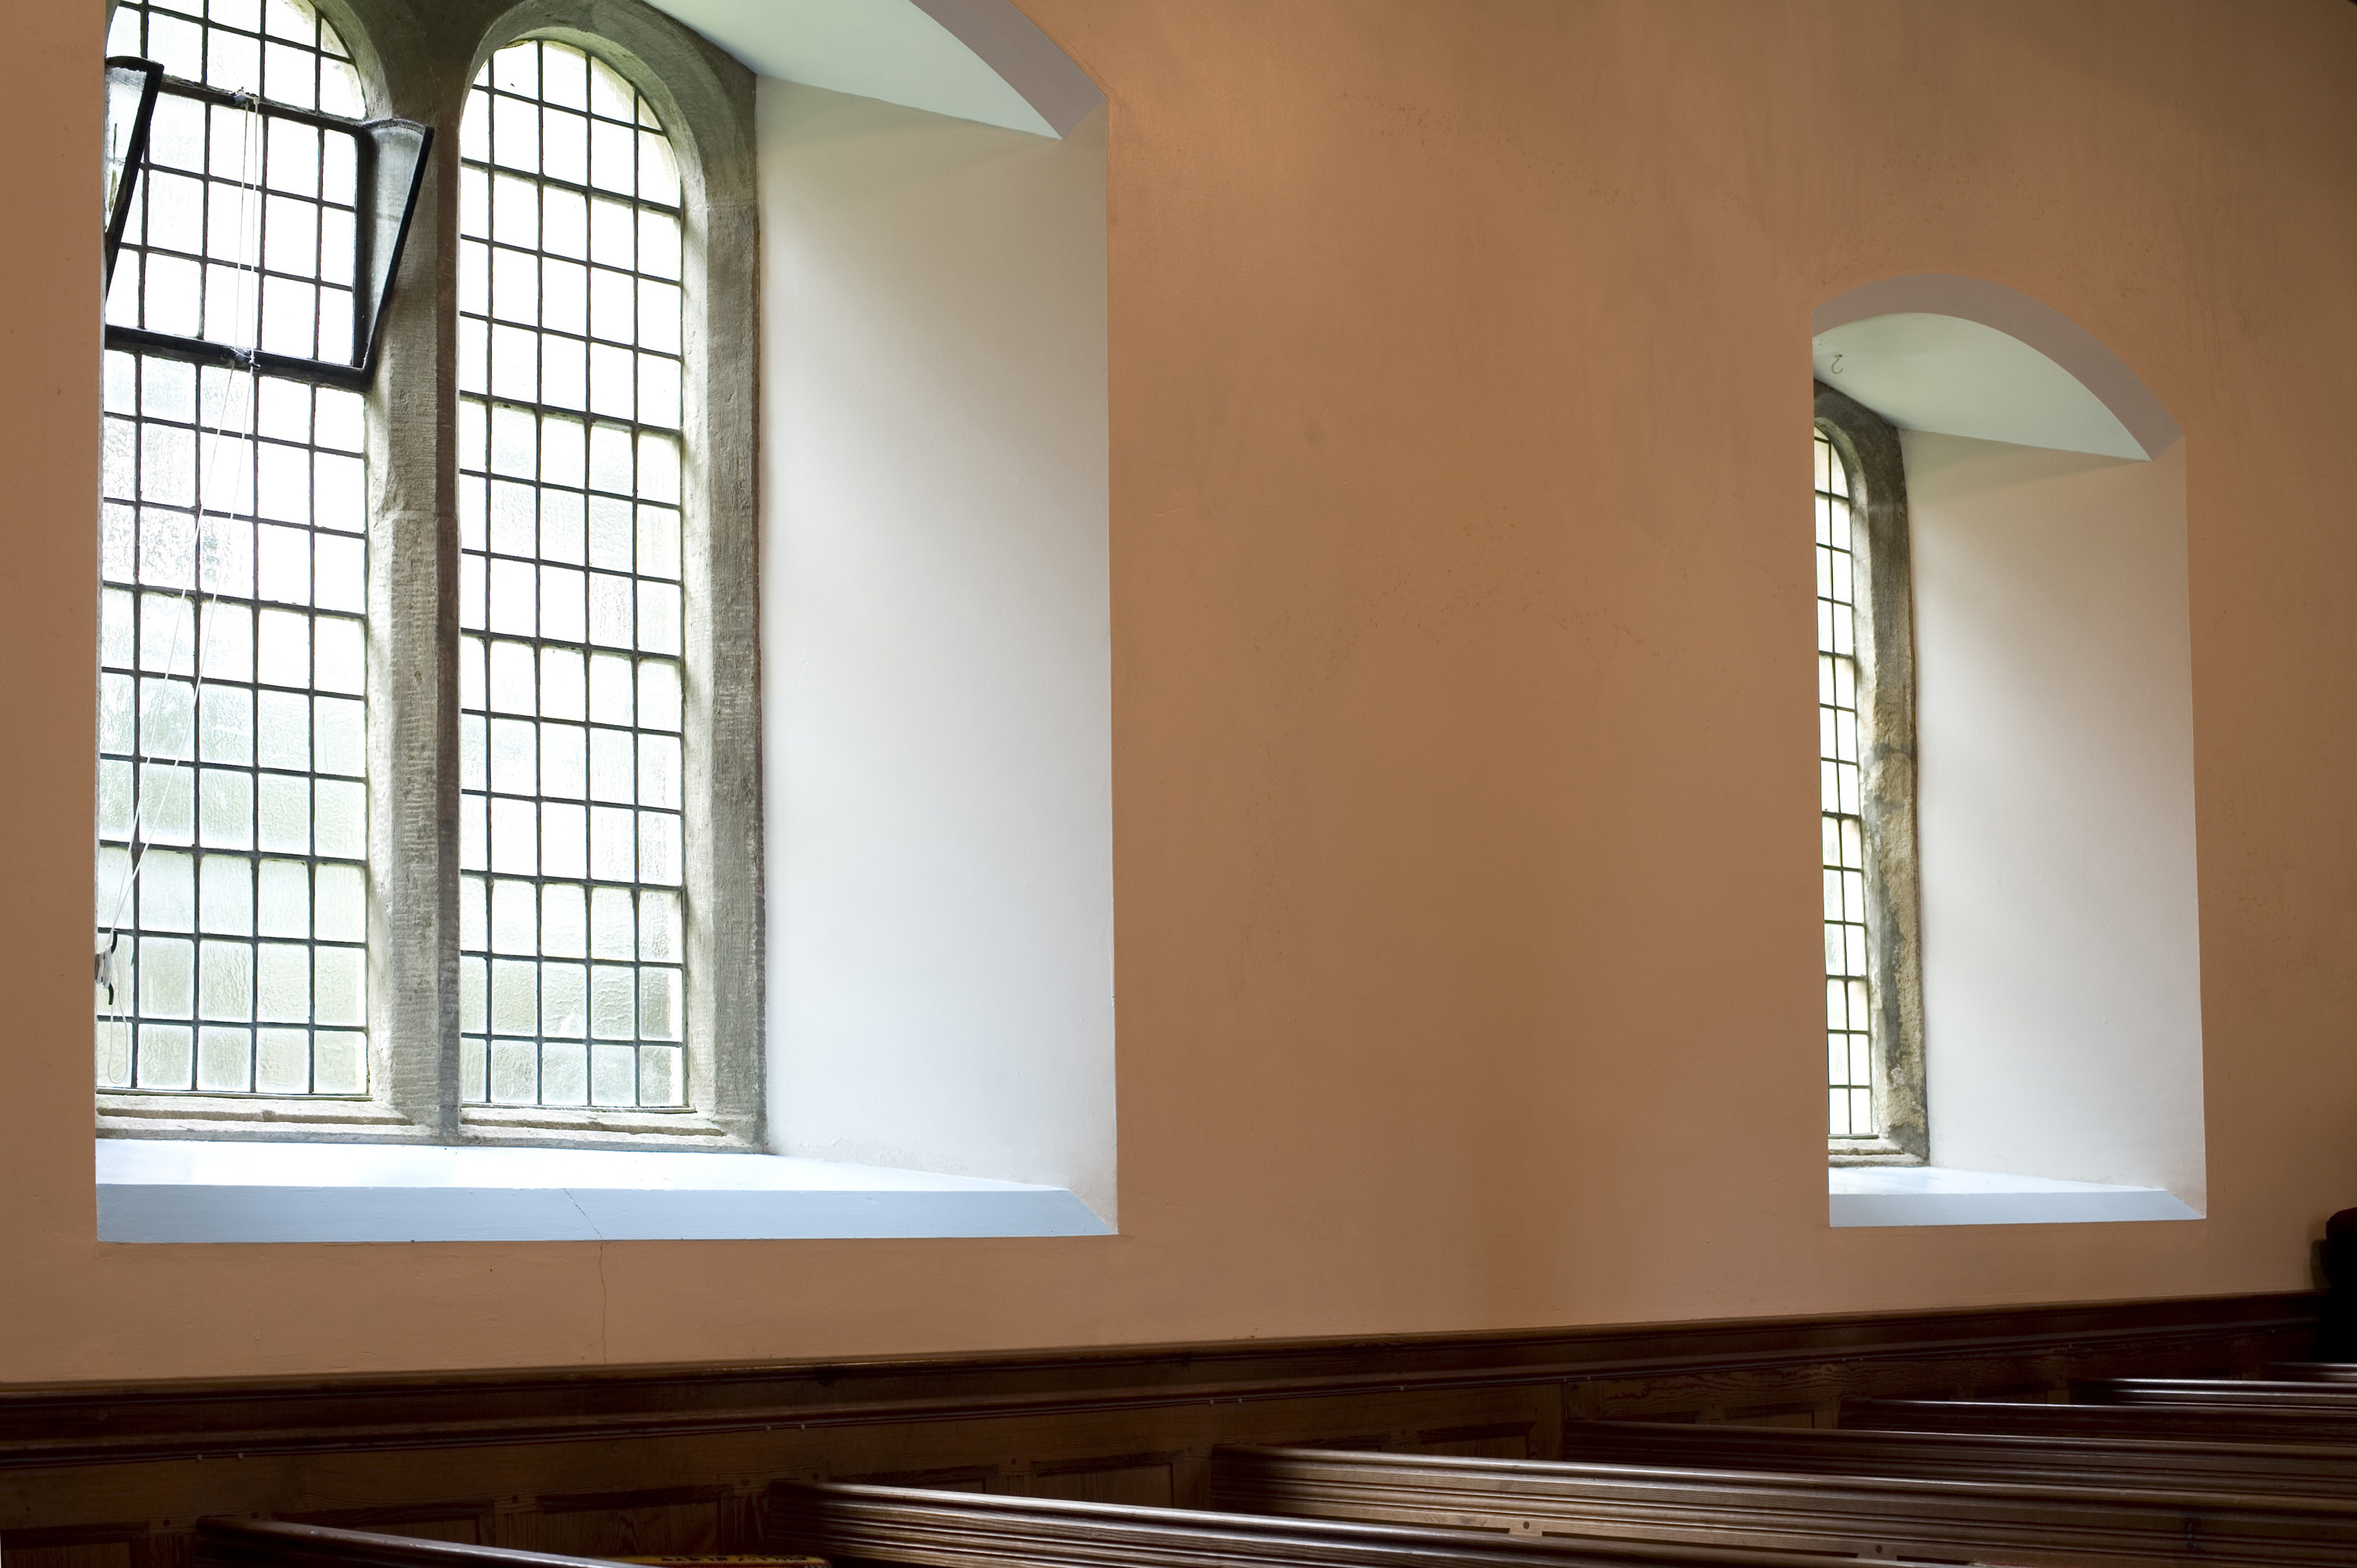 church_windows.jpg - Bright and airy church windows allowing the sunlight to stream in over the wooden pews